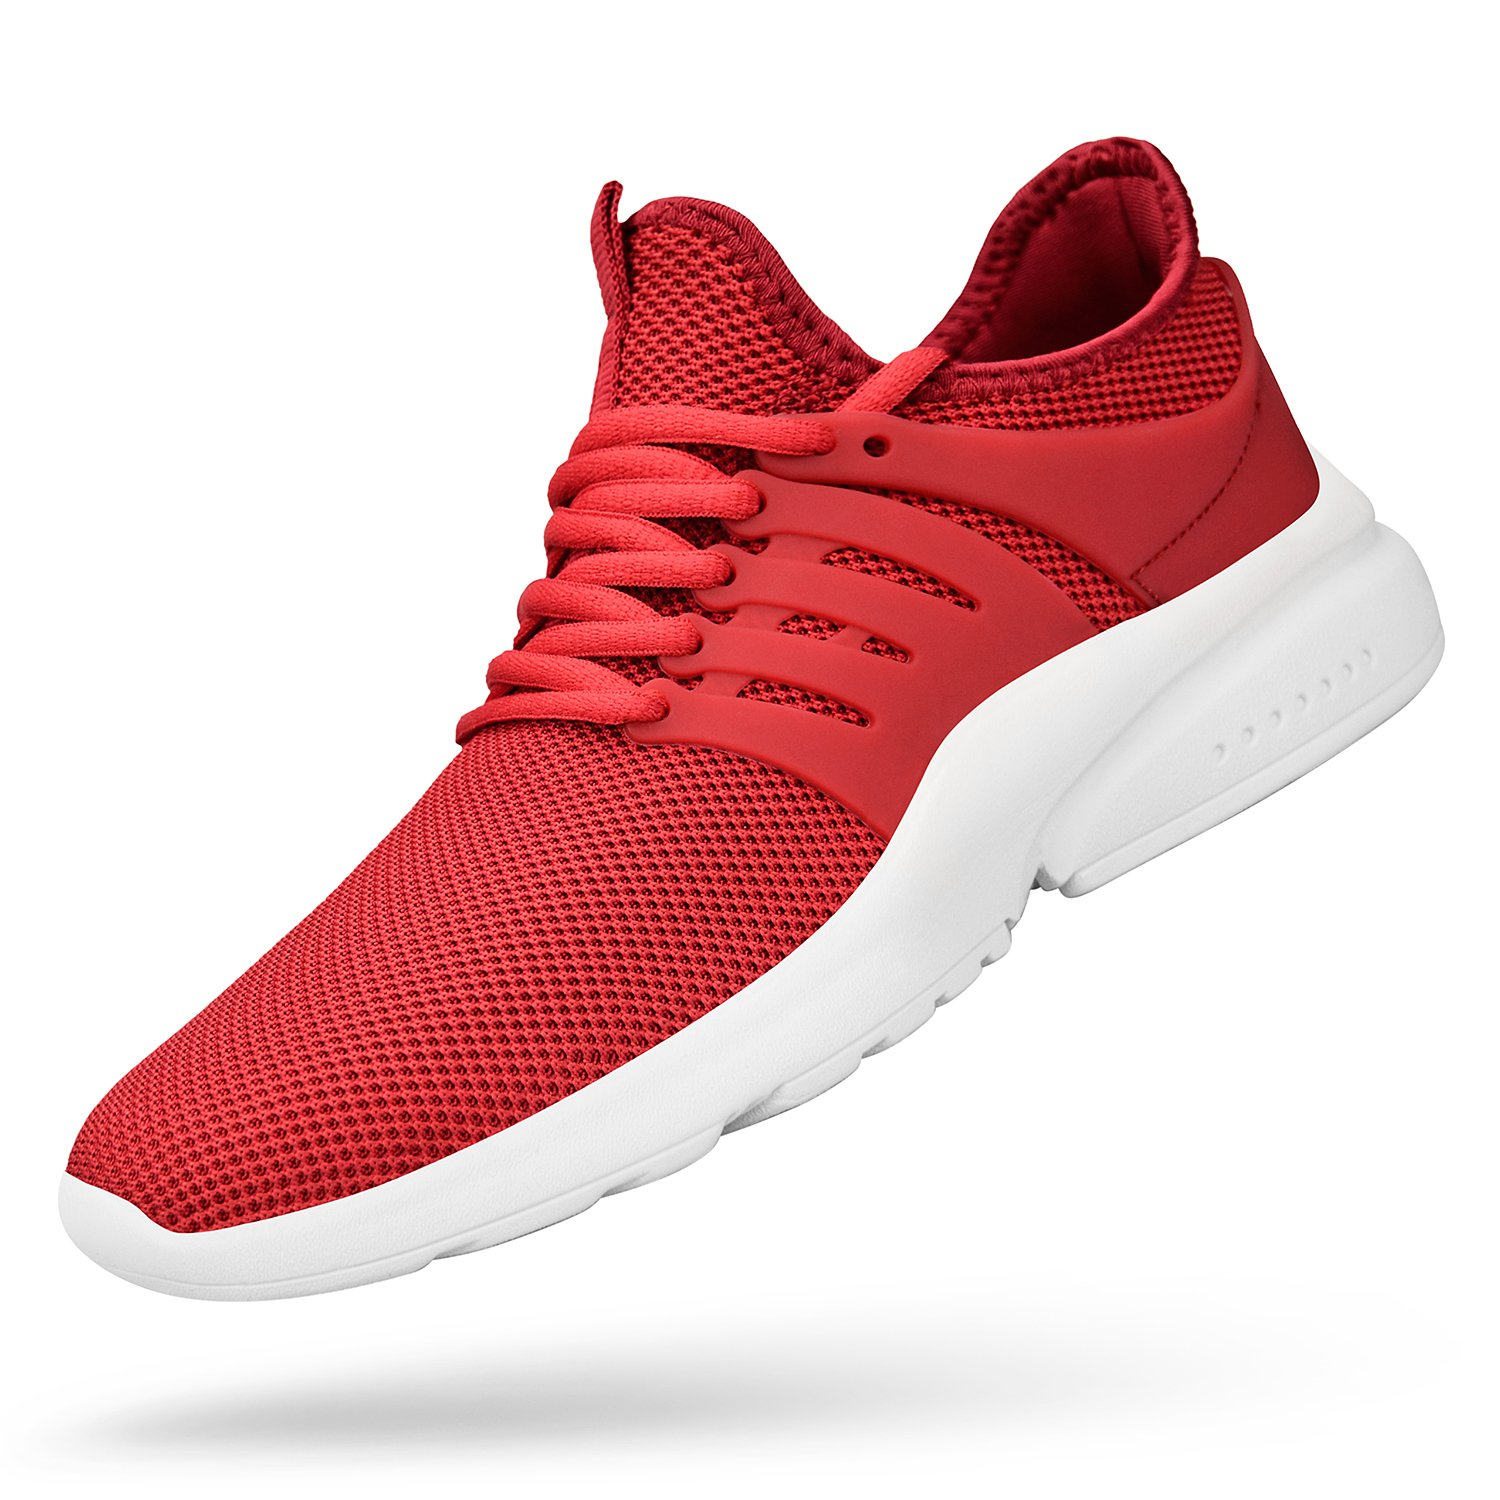 Feetmat Men's Running Shoes Lightweight Non Slip Breathable Mesh Sneakers Sports Athletic Walking Shoes Red White 10M by Feetmat